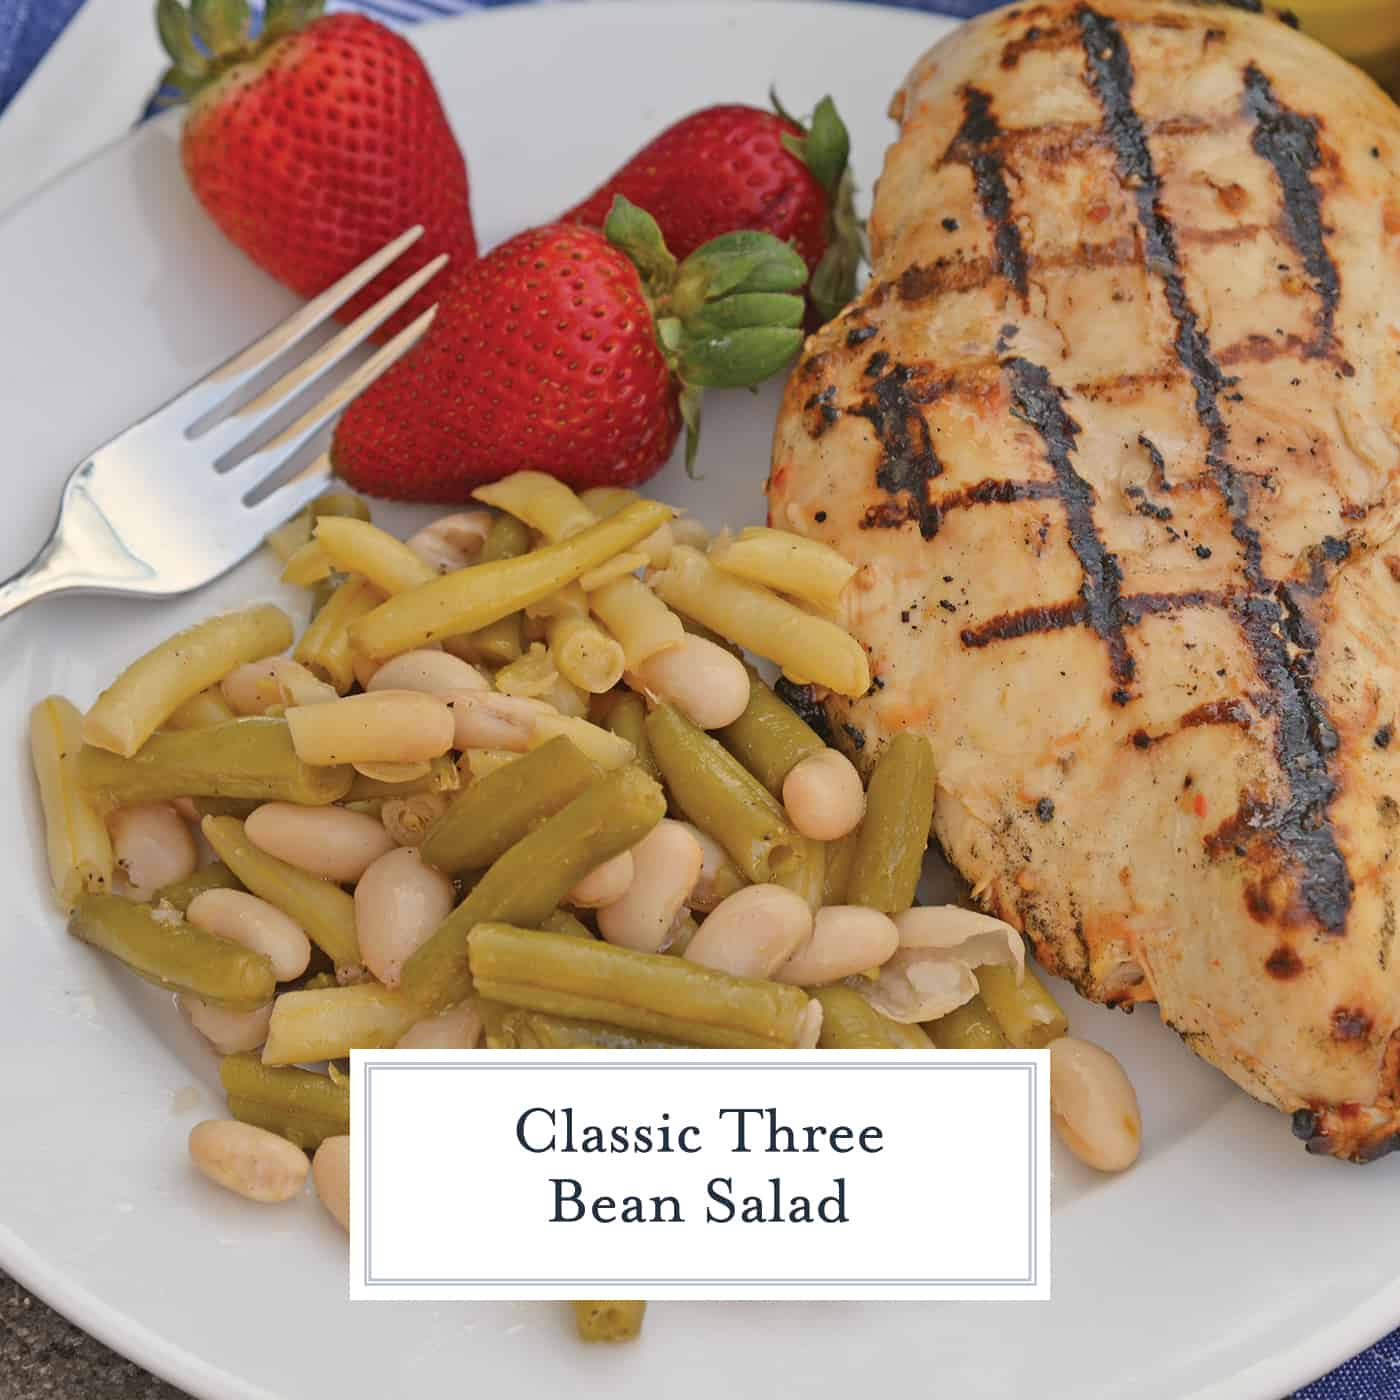 Classic Three Bean Salad is the perfect BBQ side dish. This easy, make-ahead dish is always a hit and perfect for potlucks too! #threebeansalad www.savoryexperiments.com